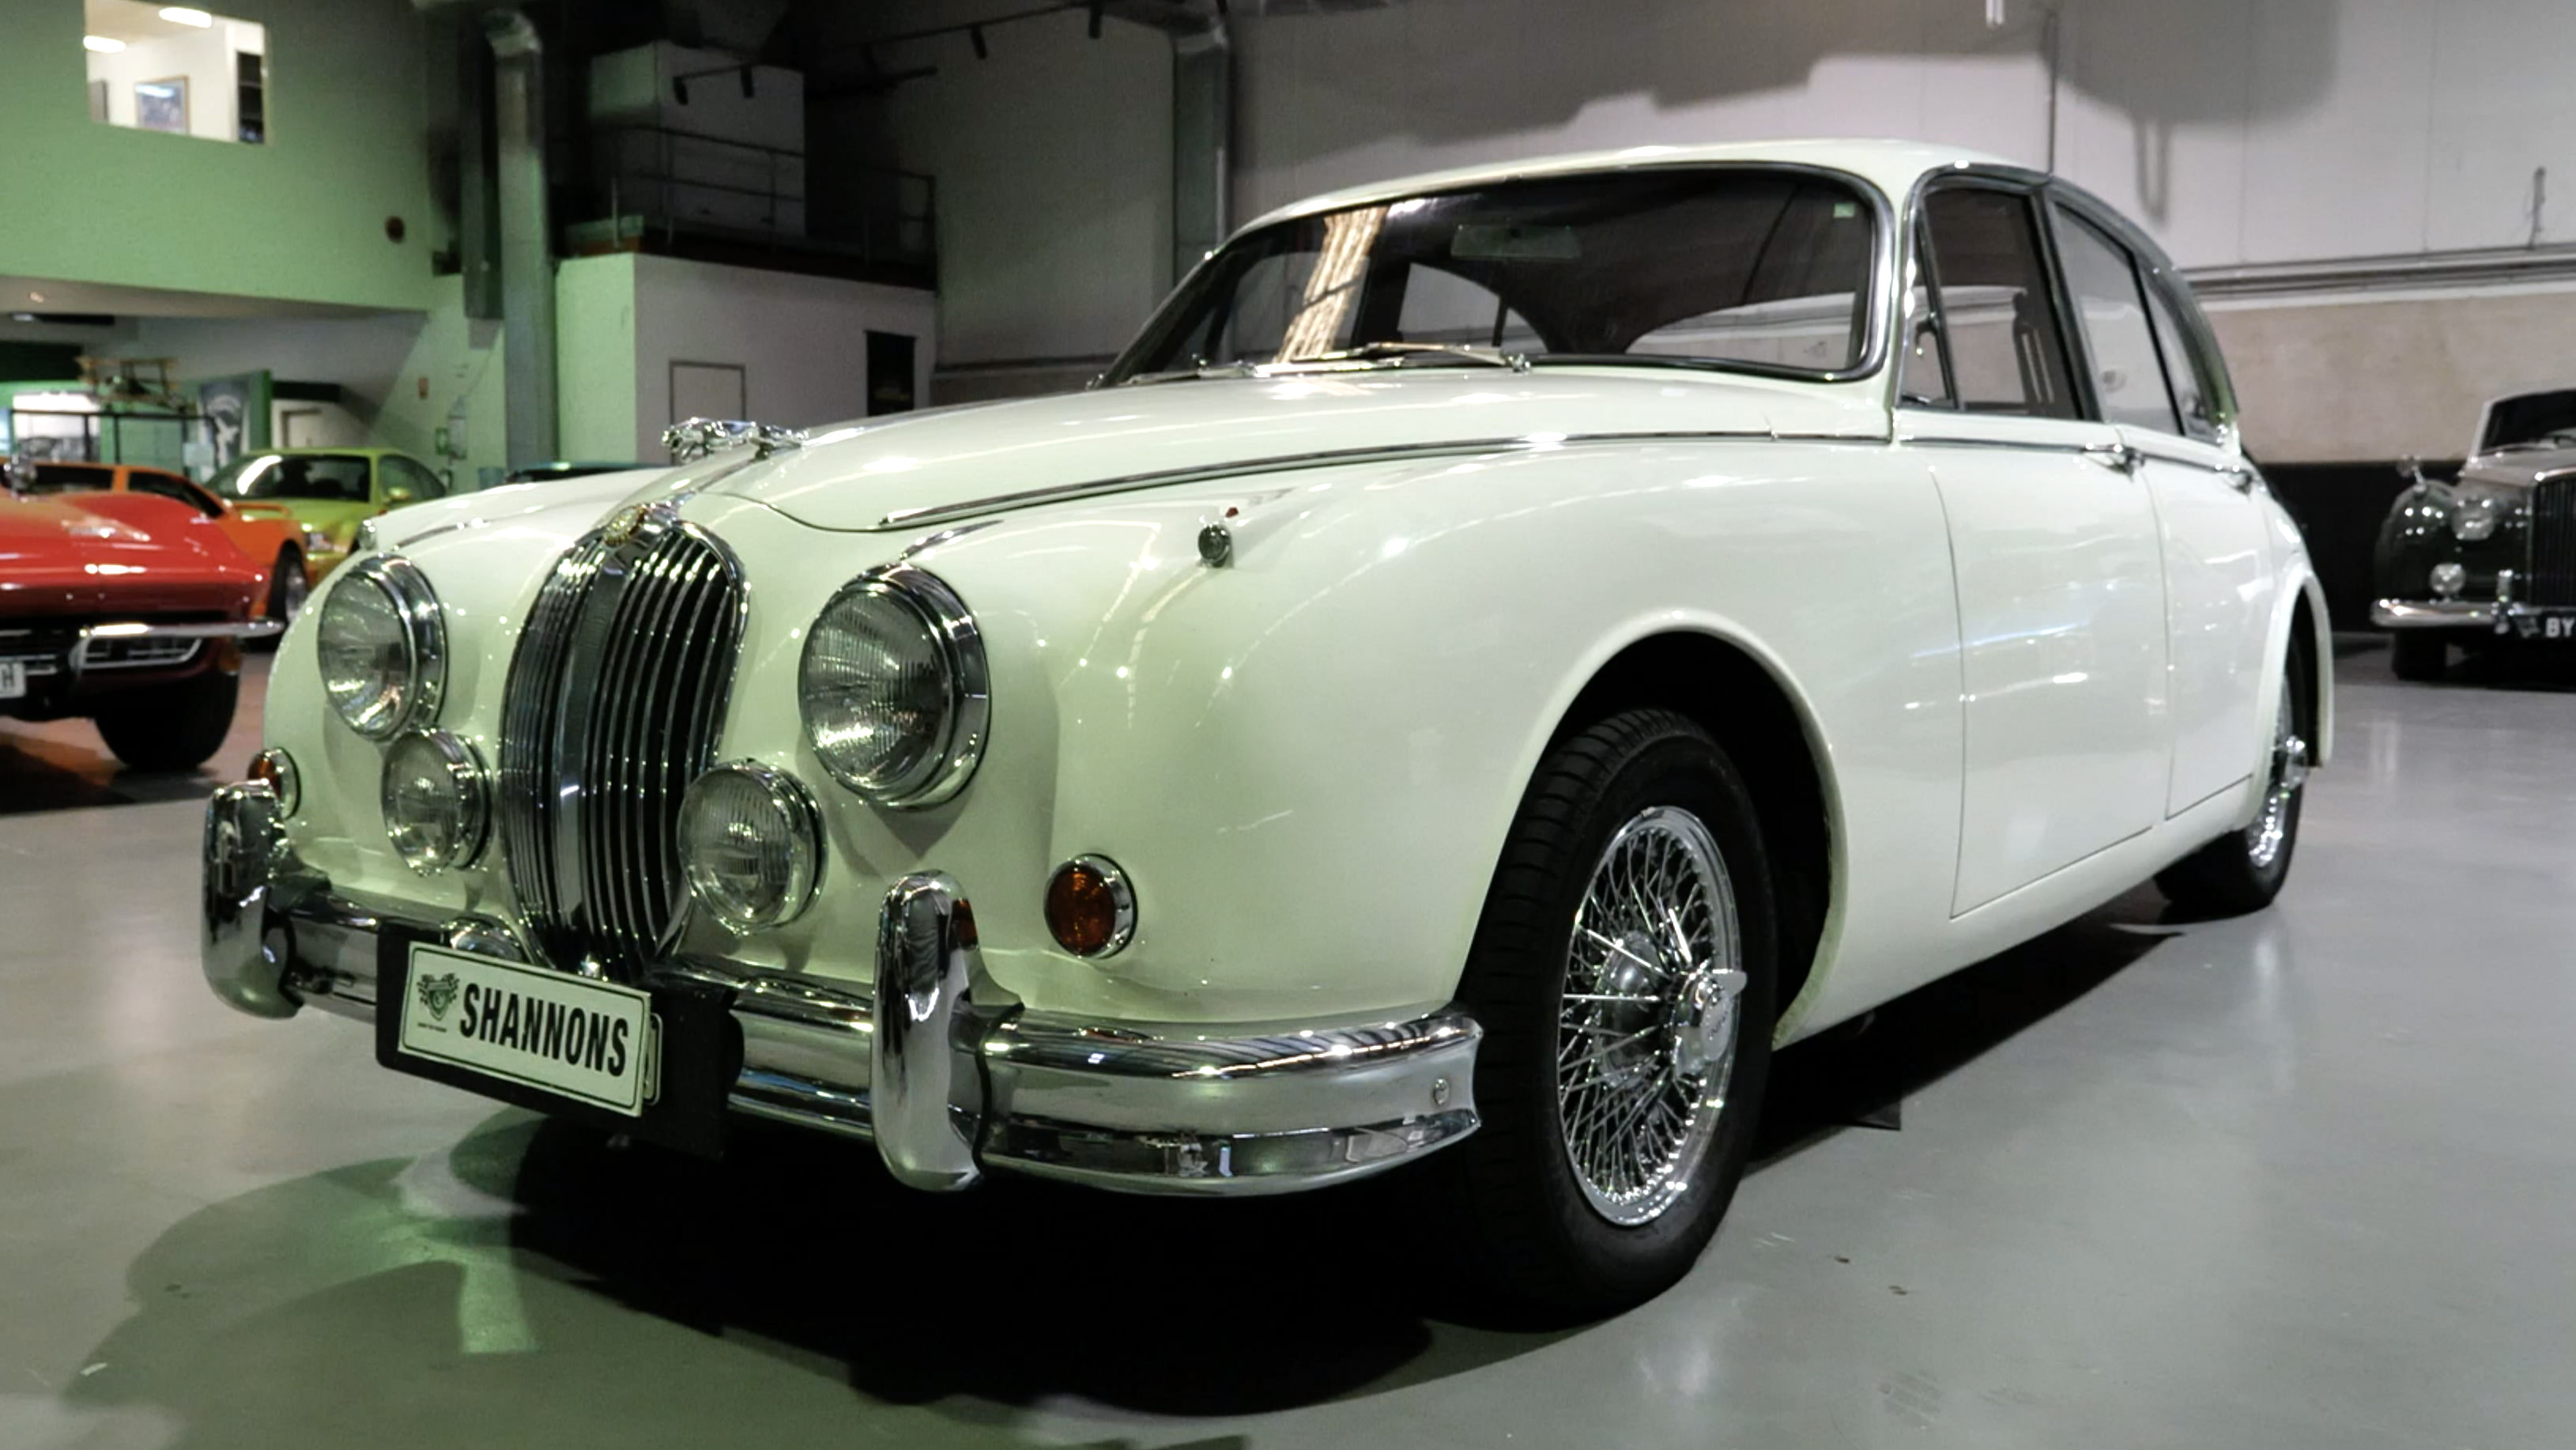 1964 Jaguar MkII 3.8 'Manual' Saloon - 2020 Shannons Spring Timed Online Auction